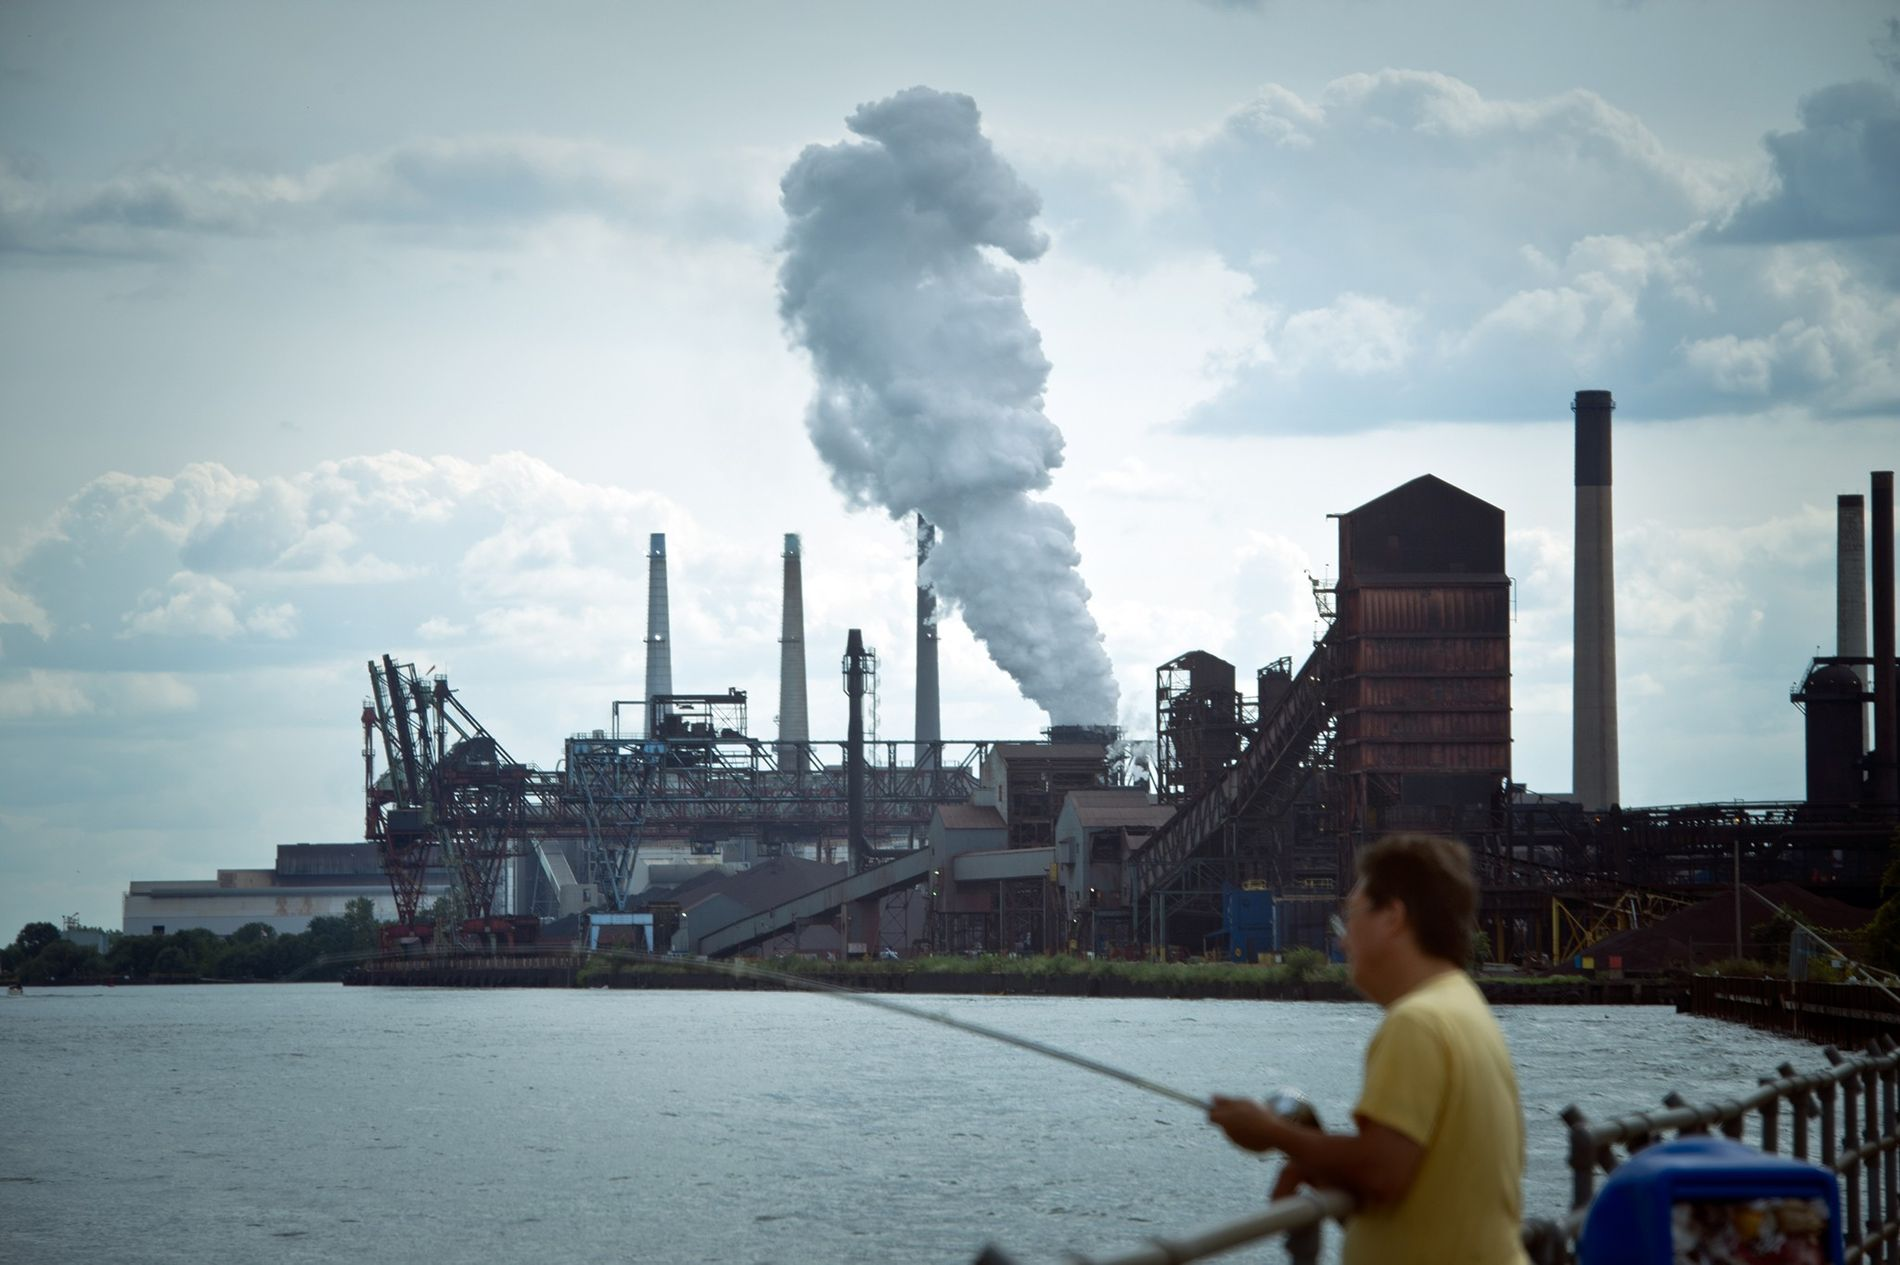 A man fishes near a DTE coal plant in Detroit.